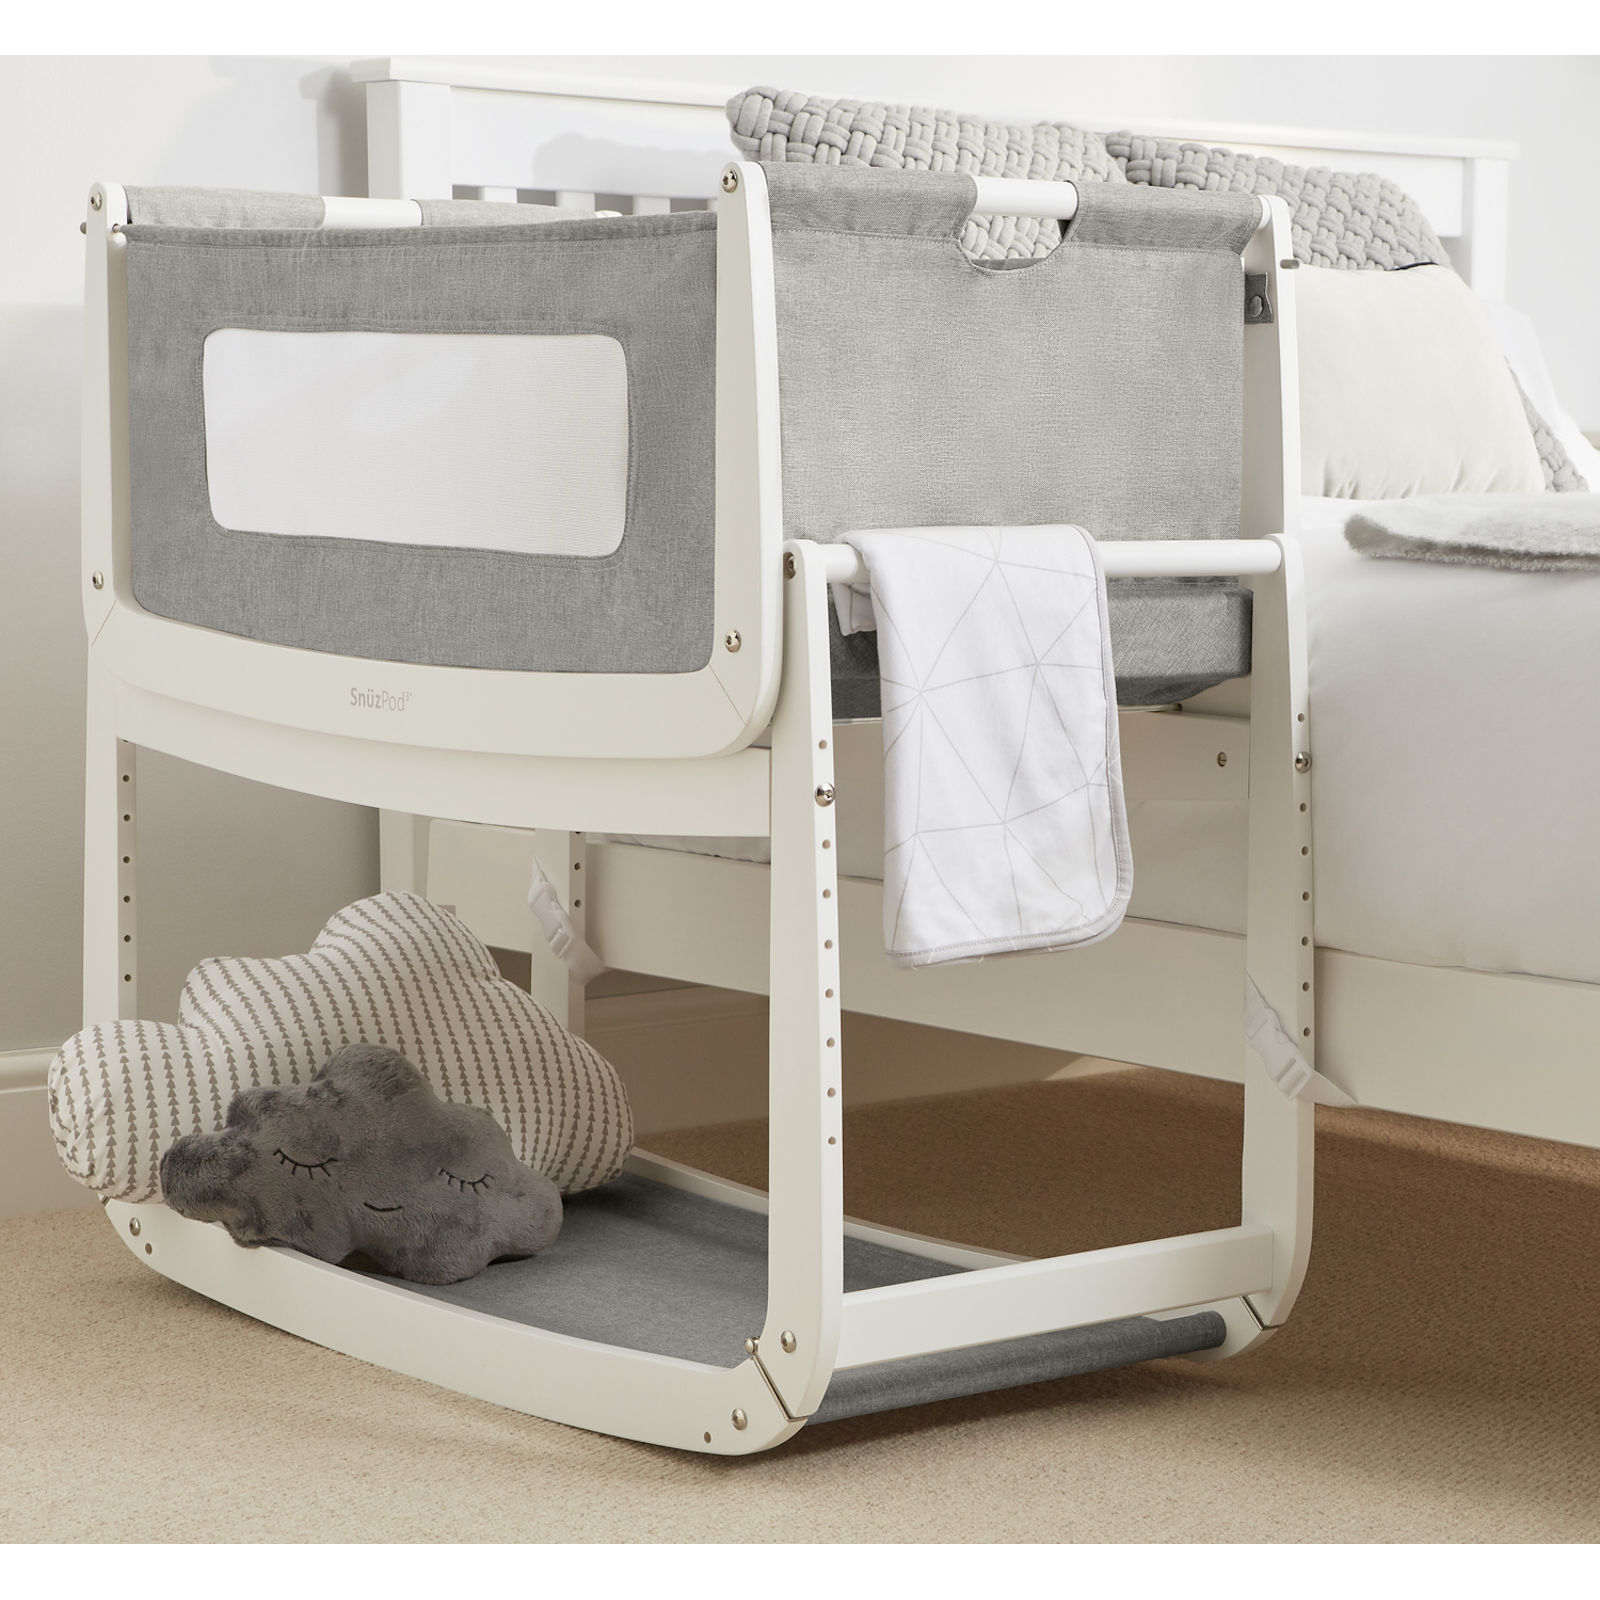 Dusk Grey: Snuz SnuzPod3 Bedside Crib 3 In 1 With Mattress & Leisure